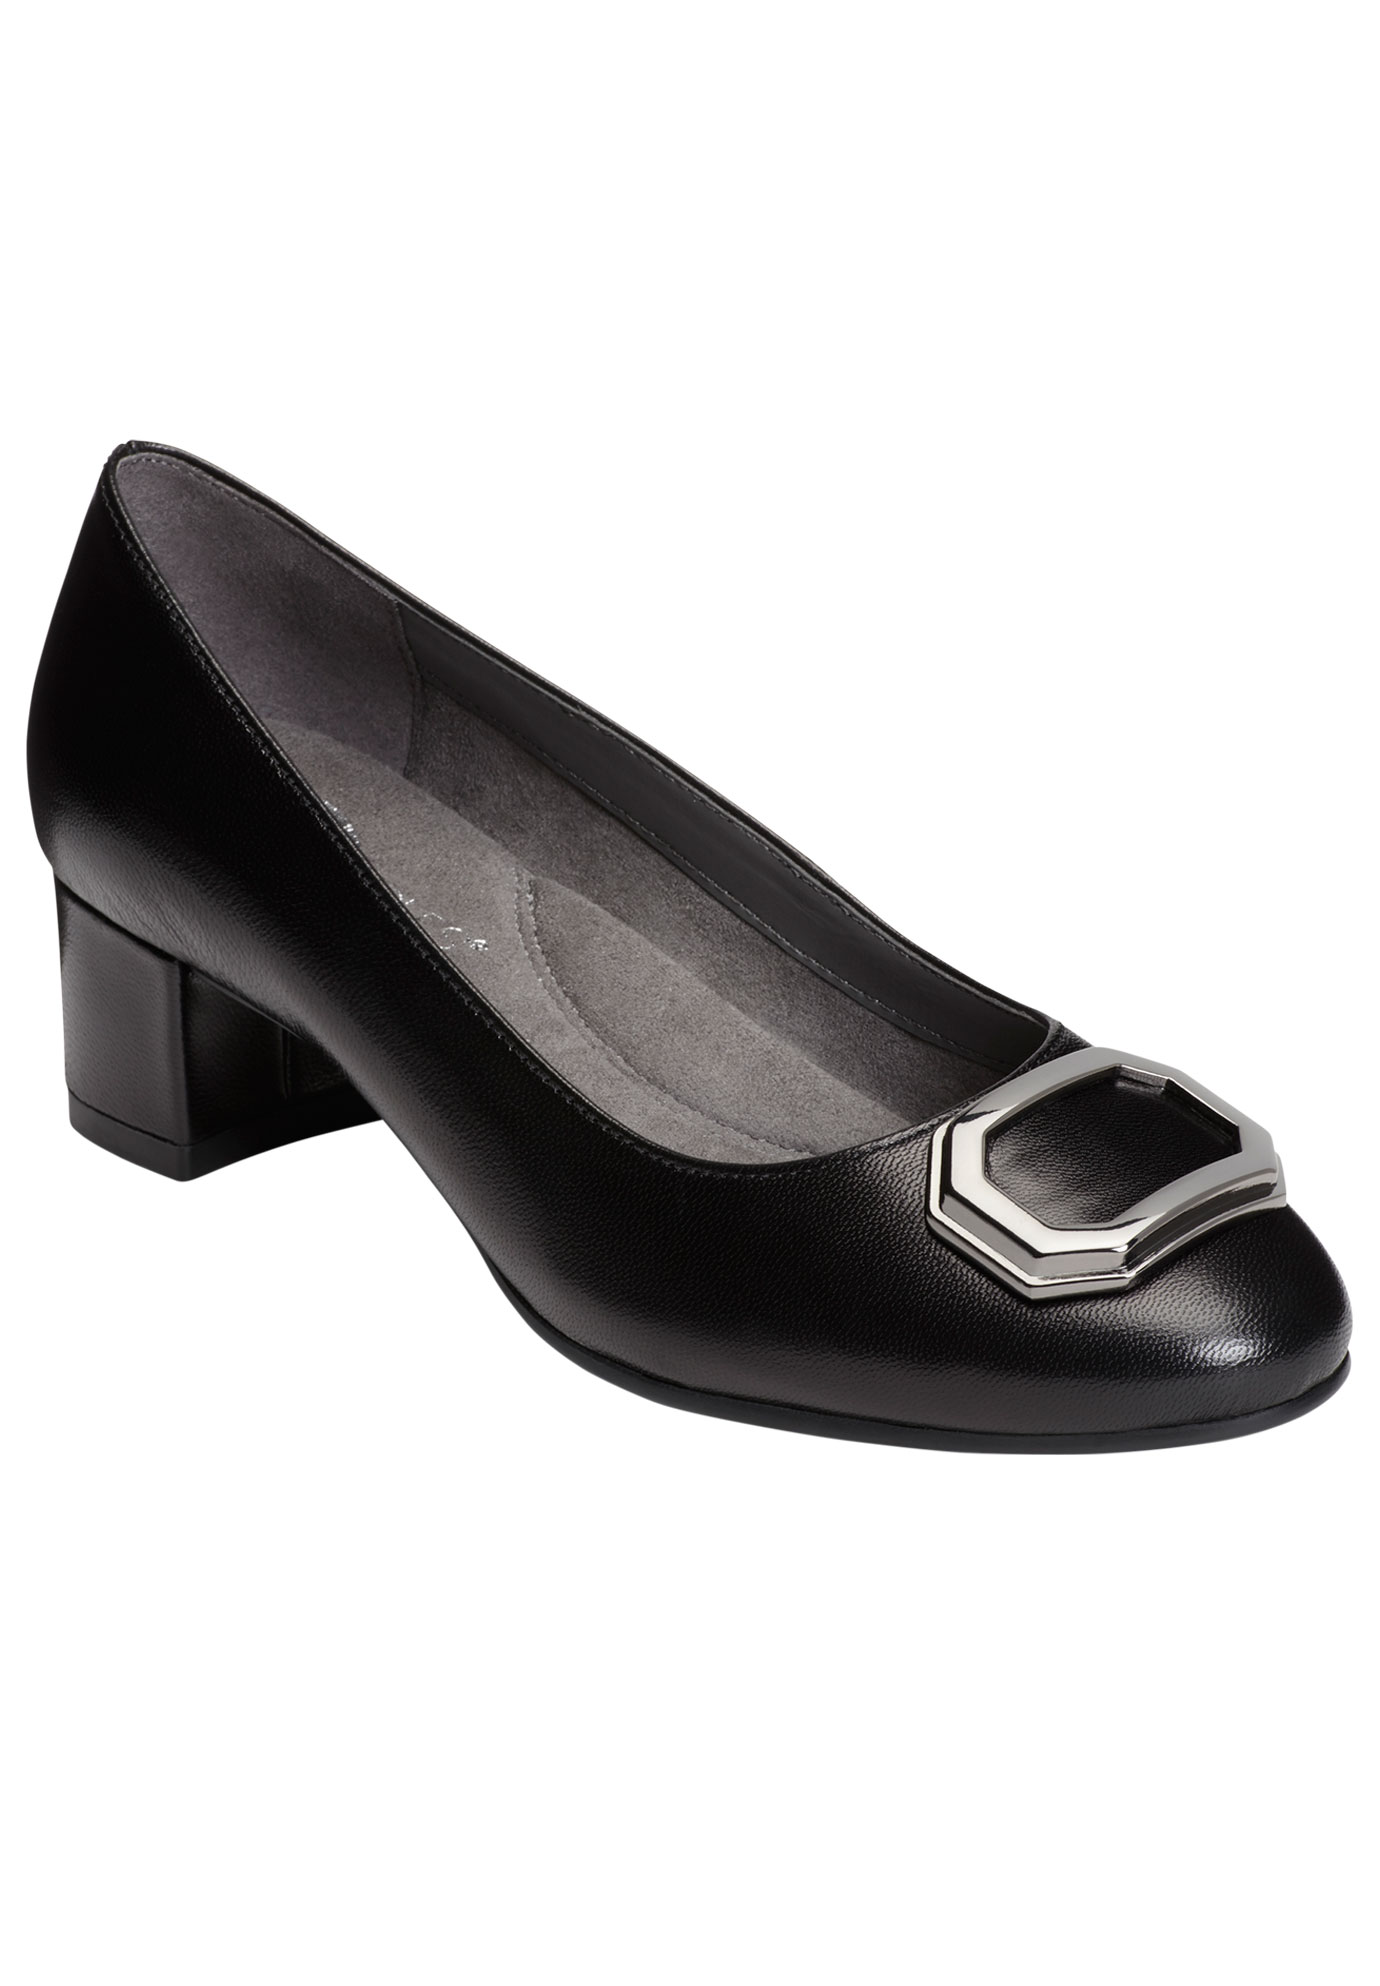 Compadre Pumps by Aerosoles®, BLACK LEATHER, hi-res